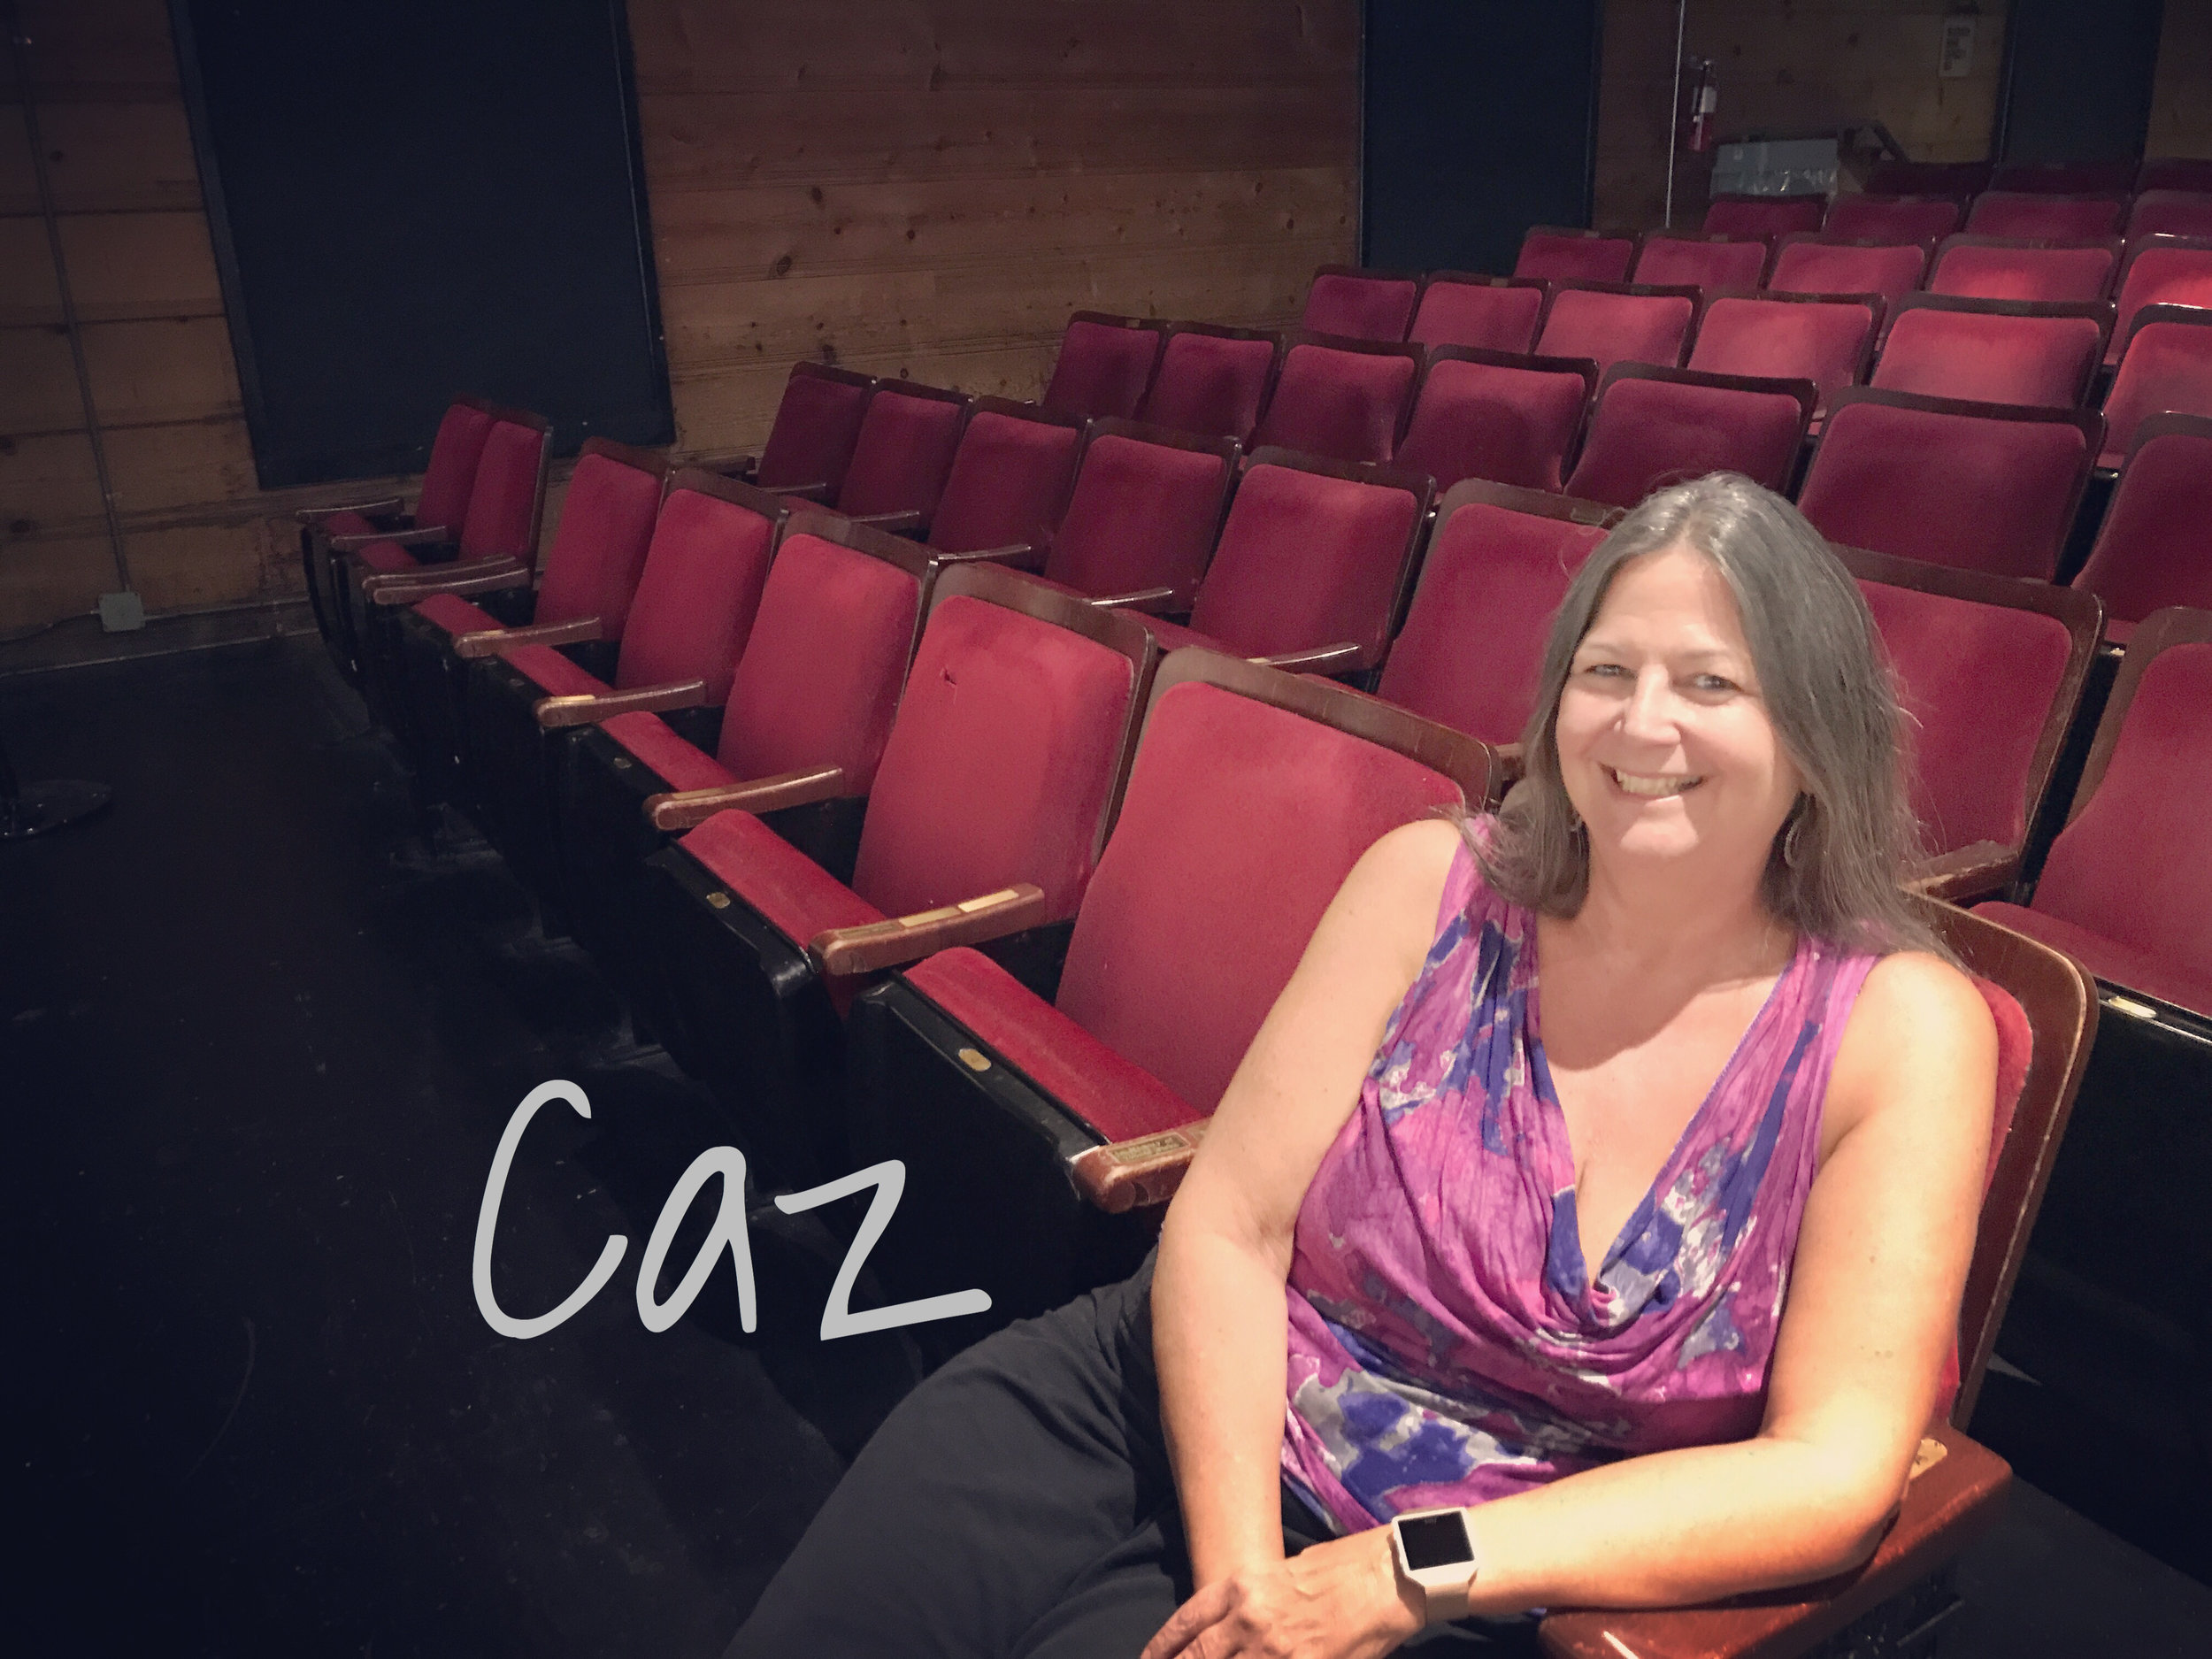 Caz - READ WHAT CAZ HAS TO SAY ABOUT THE REVOLUTIONISTS!READ WHAT CAZ HAS TO SAY ABOUT GREAT EXPECTATIONS!READ WHAT CAZ HAS TO SAY ABOUT BROOKLYN BRIDGE!READ WHAT CAZ HAS TO SAY ABOUT WOMEN ON THE VERGE!